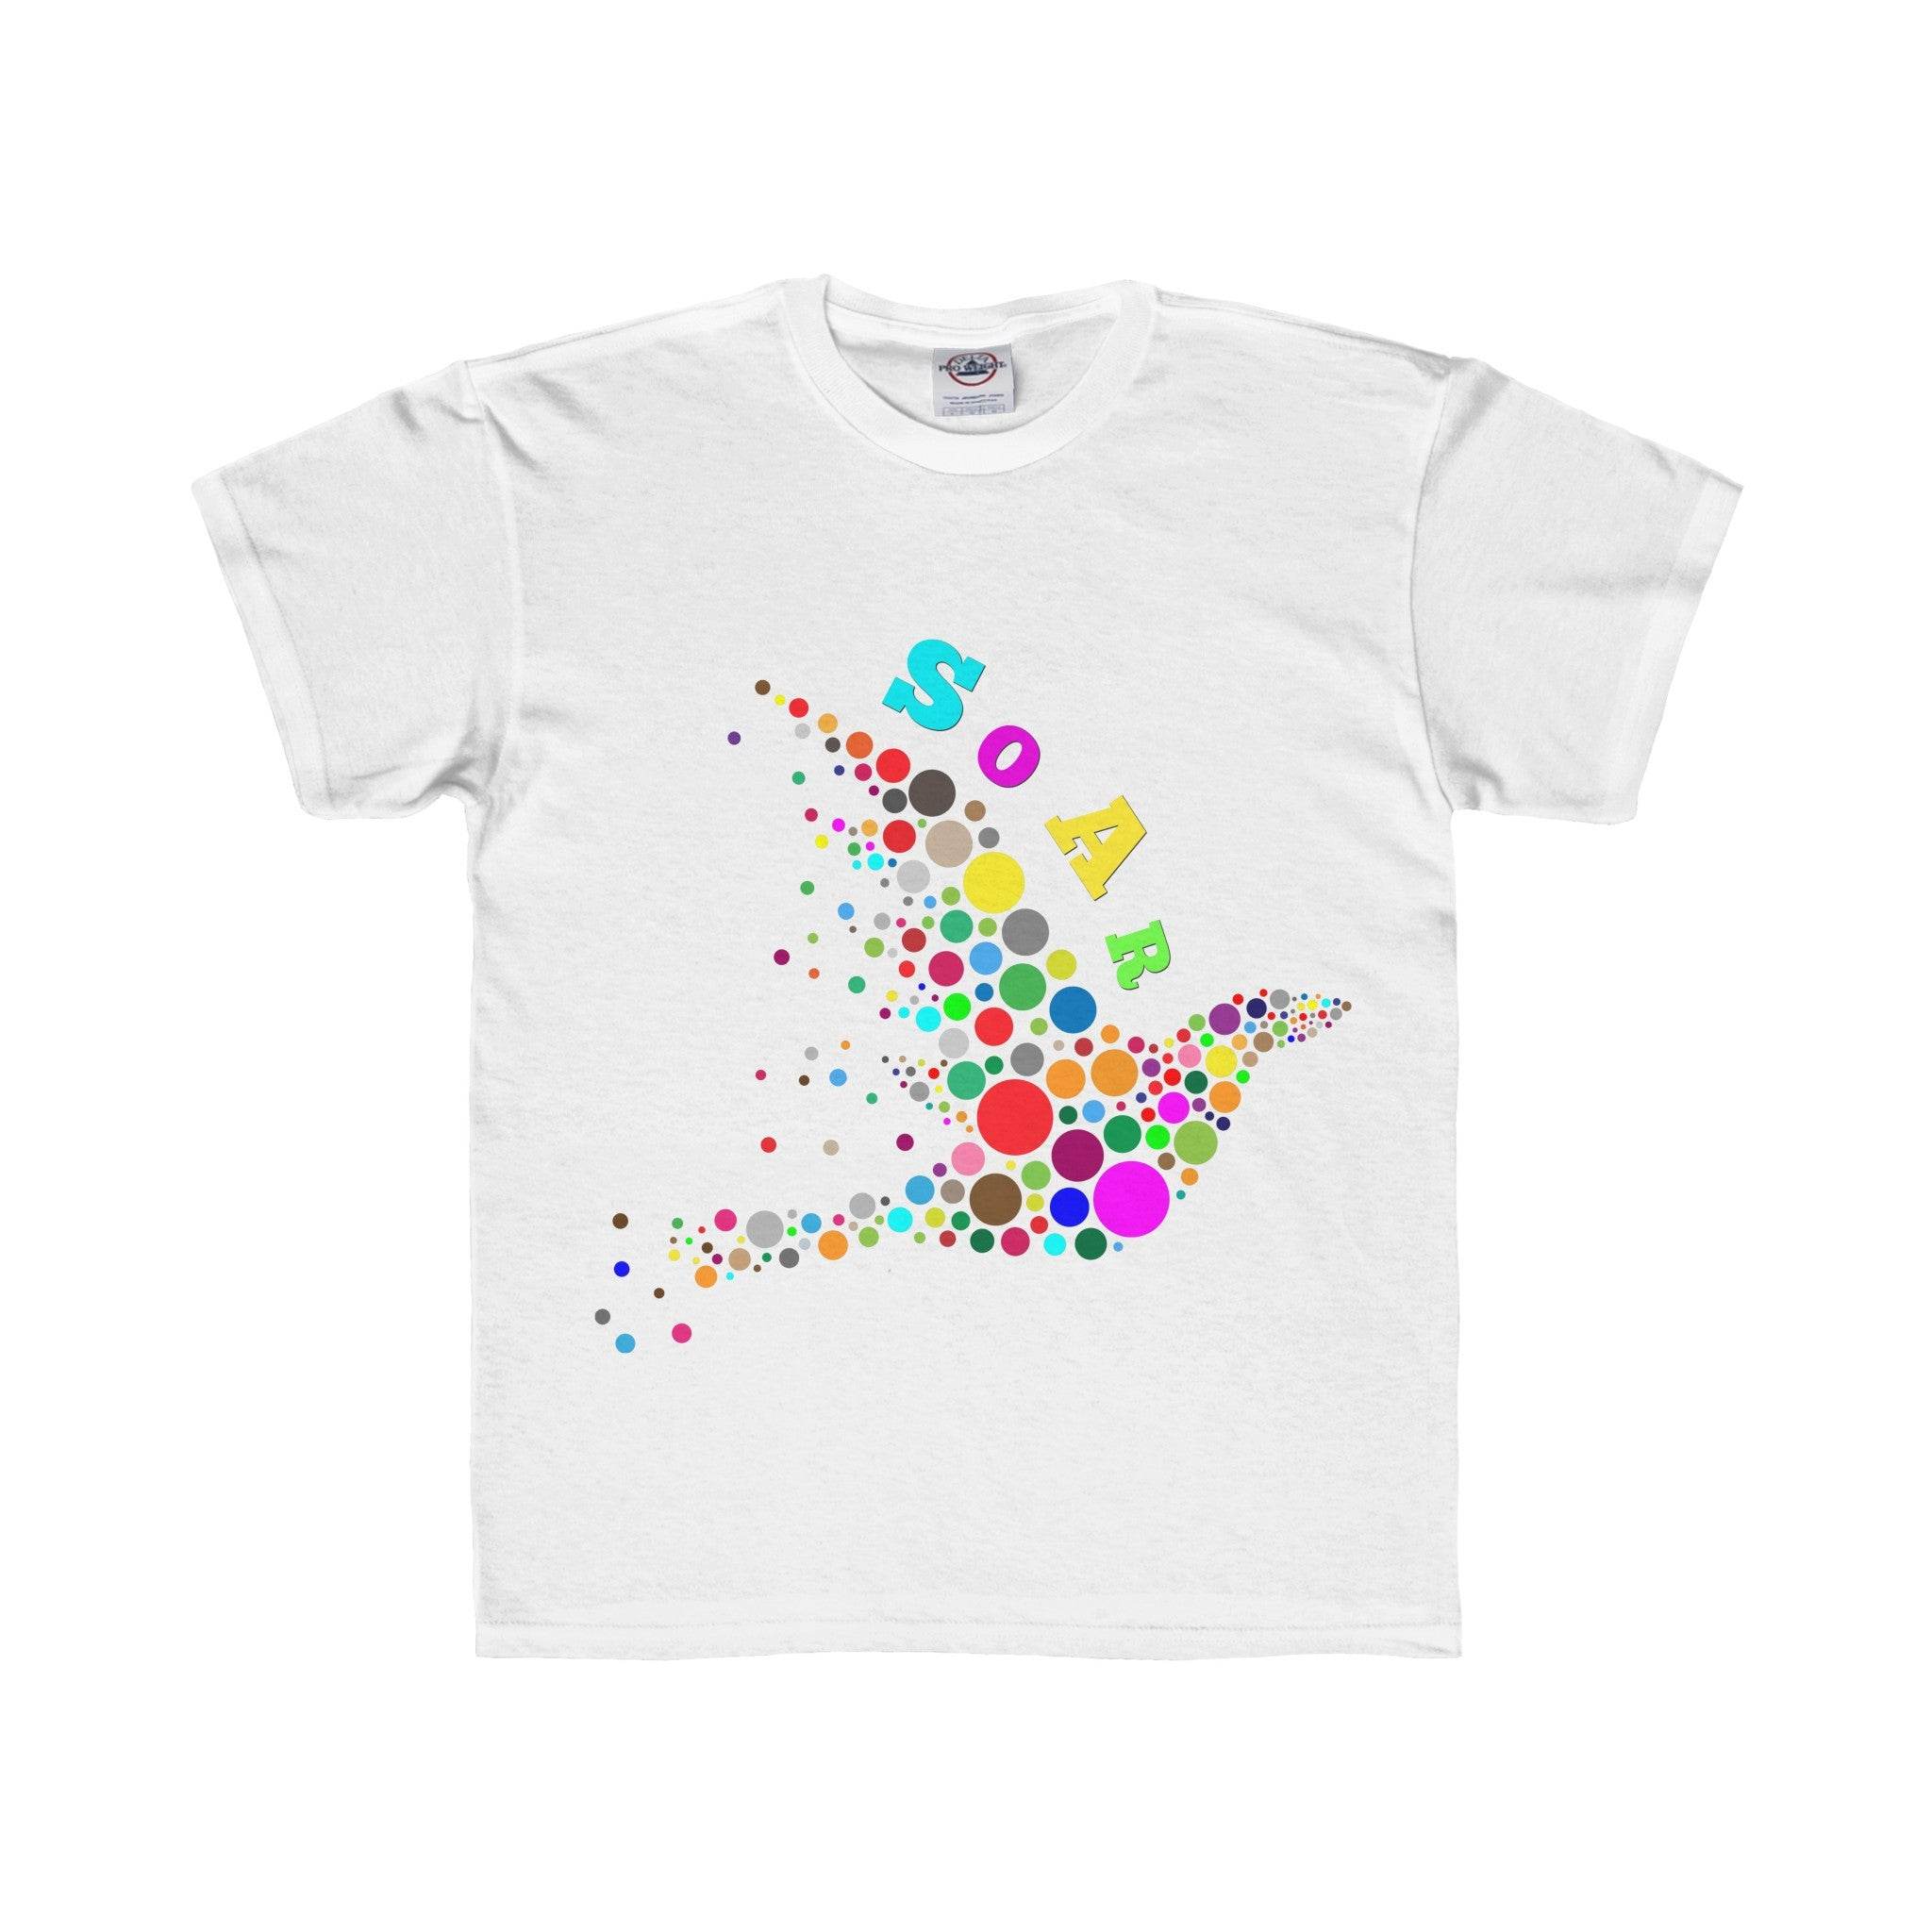 Soar Multi-Color Design Tee (5 colors available)